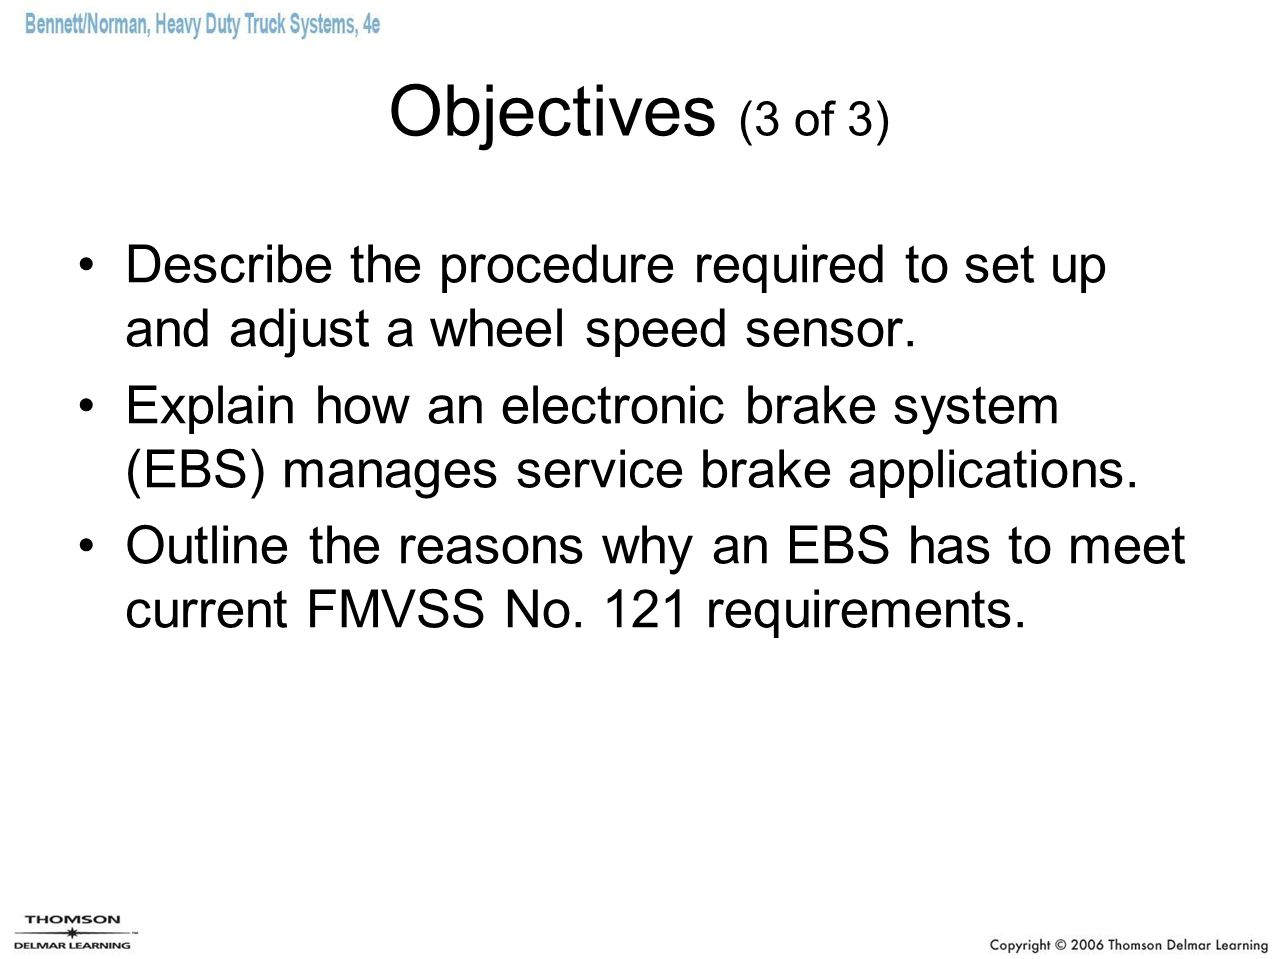 Objectives (3 of 3) Describe the procedure required to set up and adjust a wheel speed sensor.